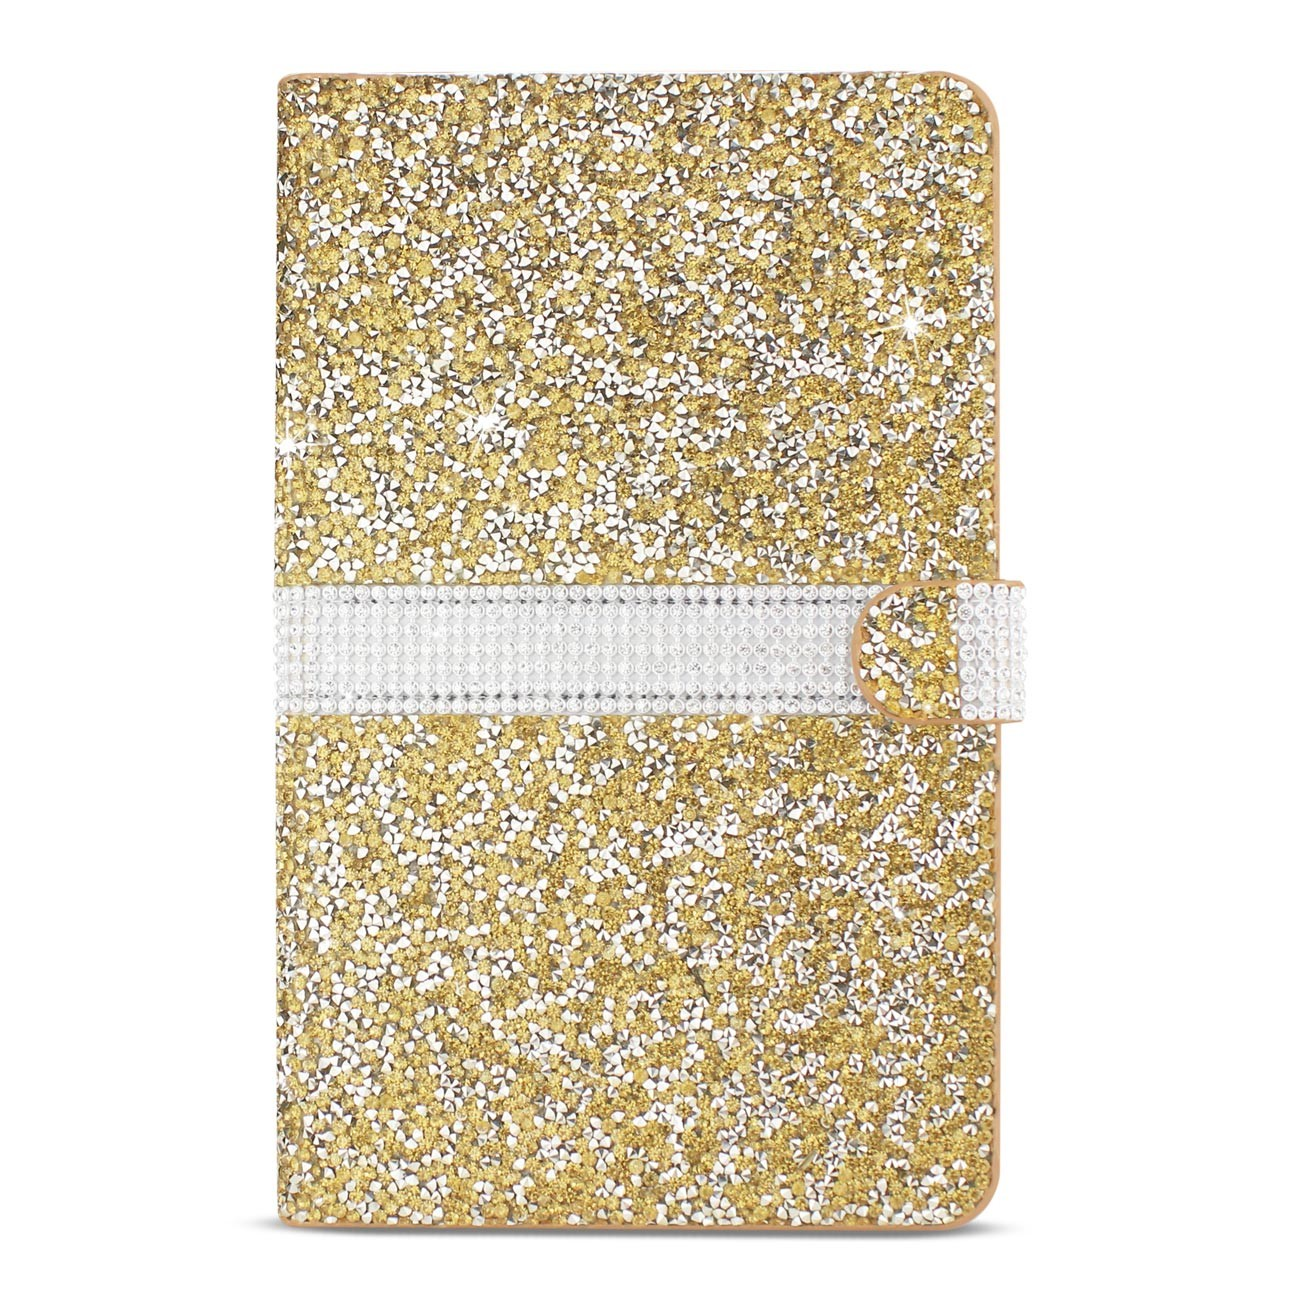 Diamond Rhinestone Wallet Case For 8 Inch Tablets In Gold